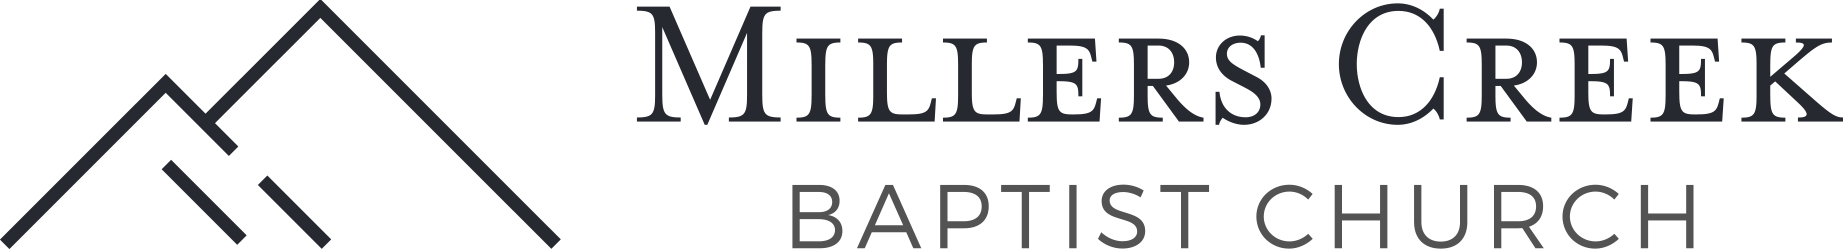 Millers Creek Baptist Church